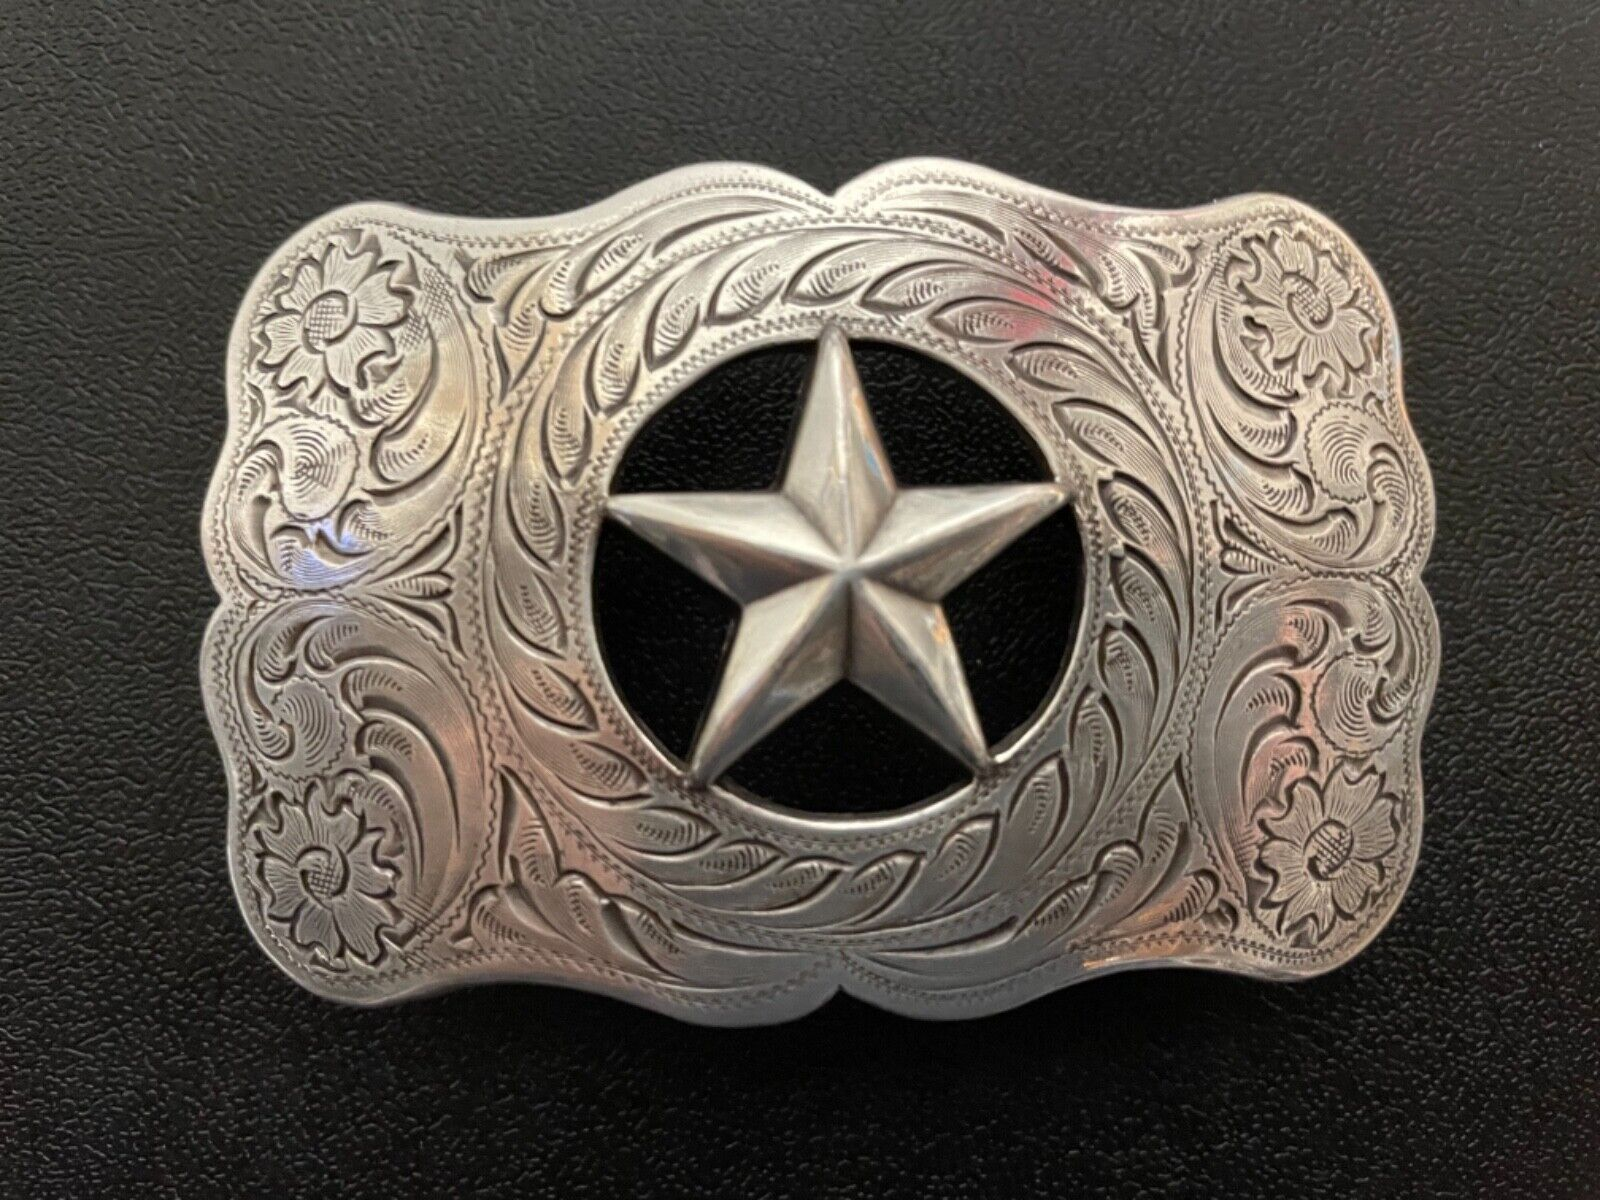 Unisex,Western,Cowboy,Floral engraved,Rodeo,Lone Star belt buckle.silver plaited